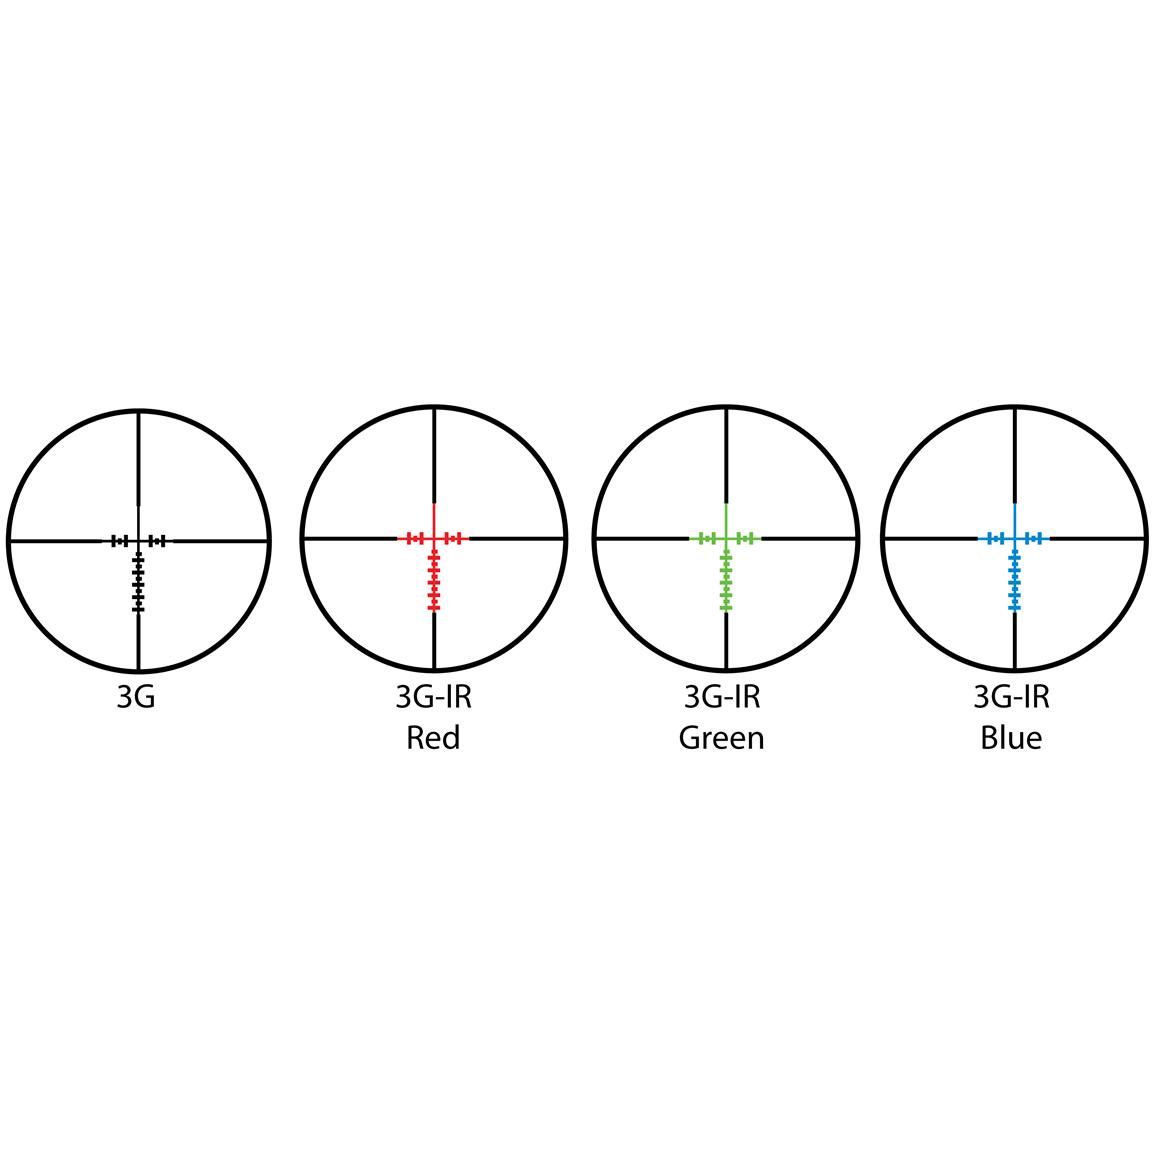 Precise 3G reticle illuminates in red, green or blue for targeting in any light conditions